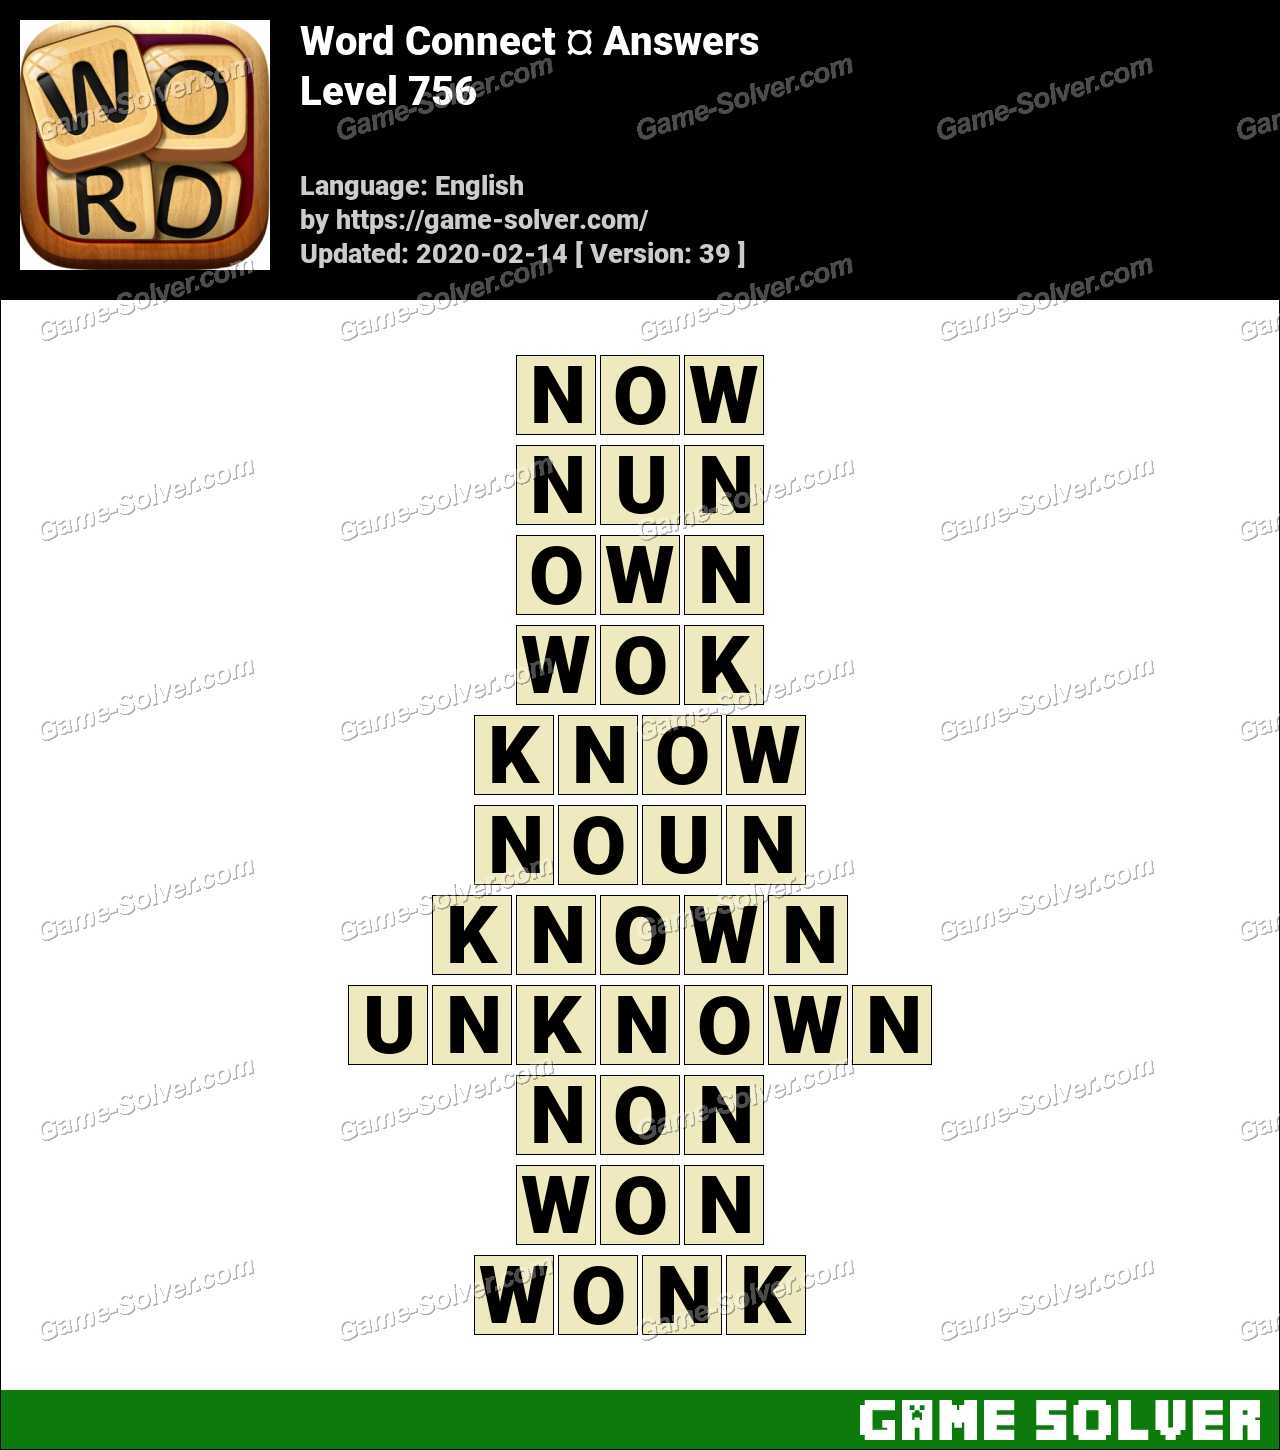 Word Connect Level 756 Answers